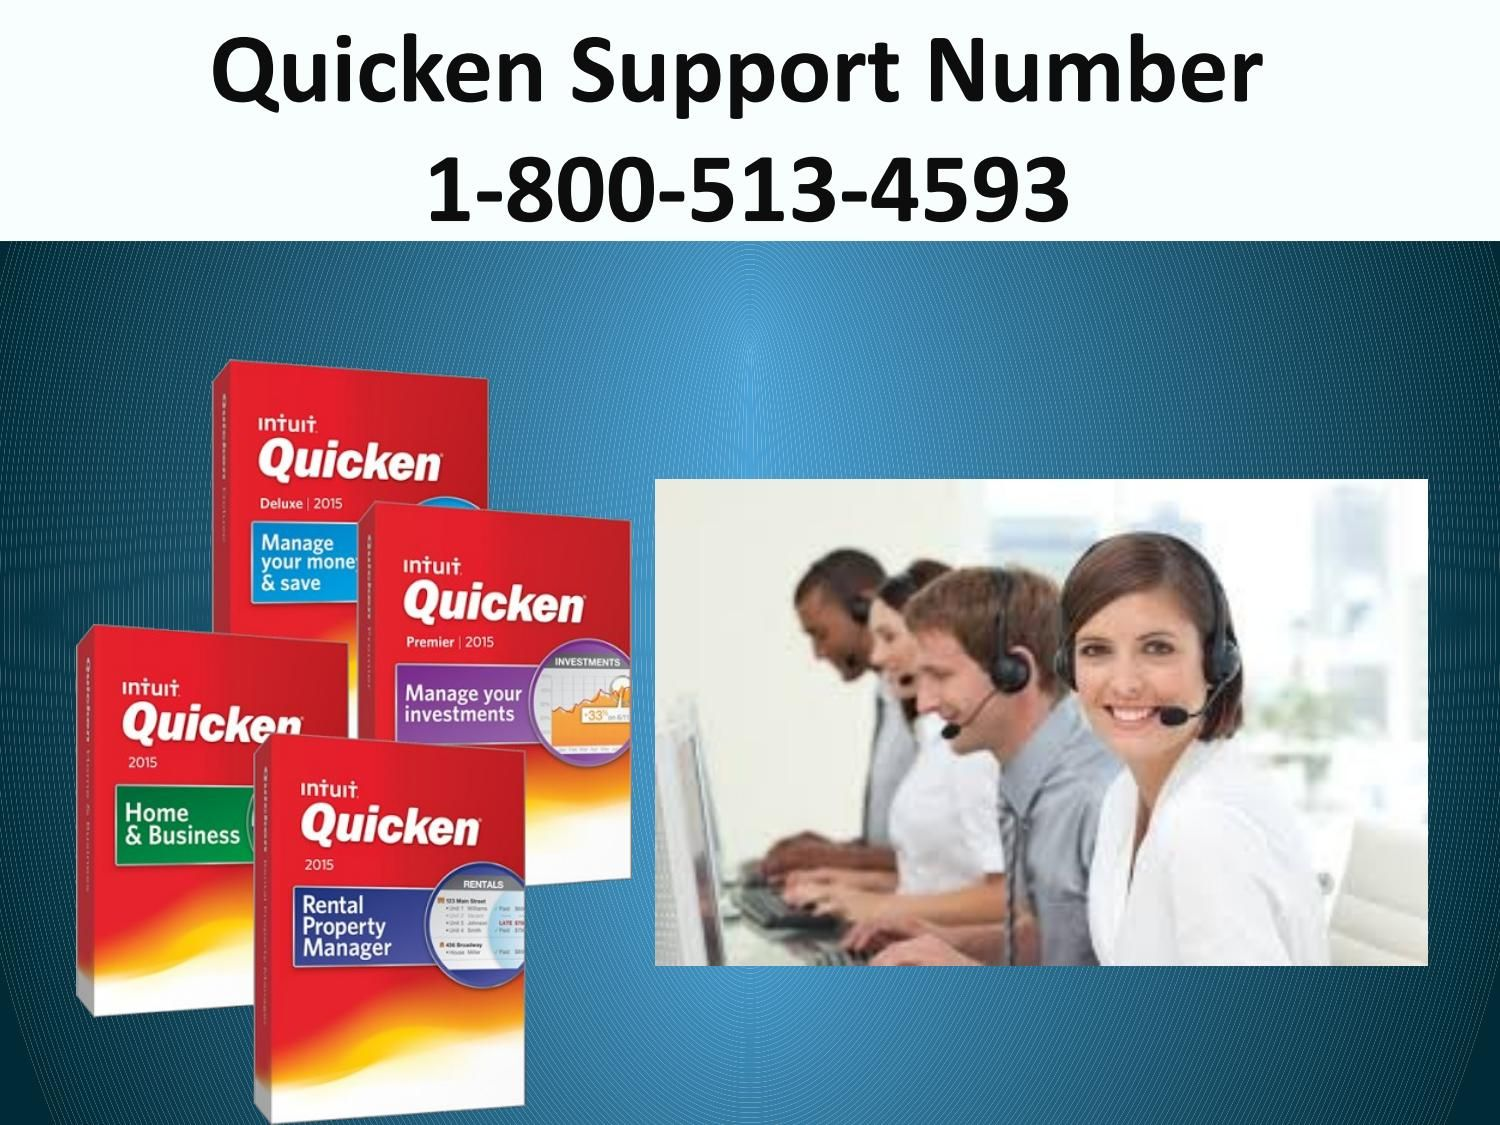 Quicken Technial Support Number 18005134593, Quicken